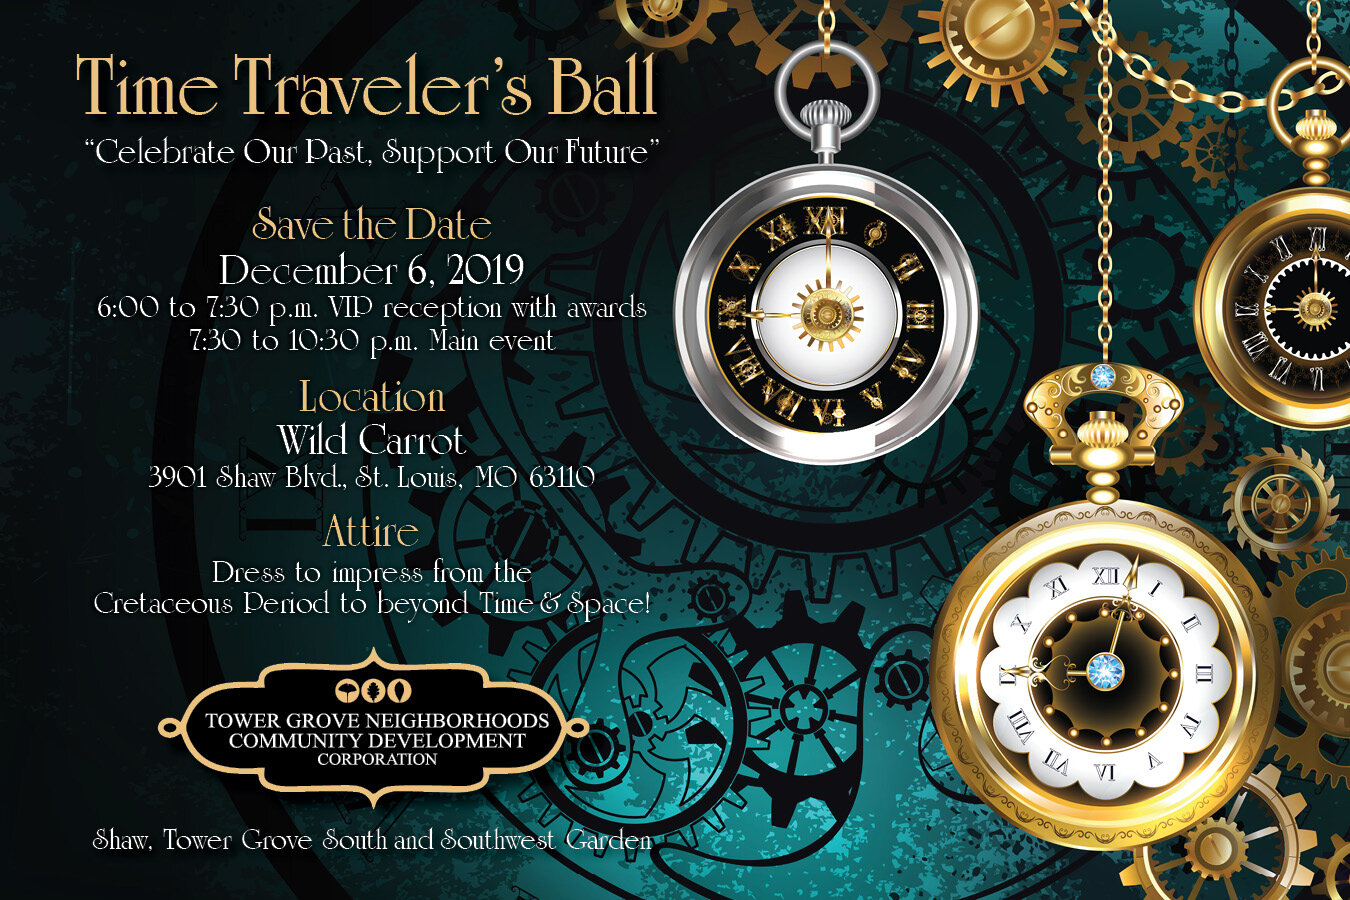 Time Traveler's Ball Save the Date-horizontal.jpg